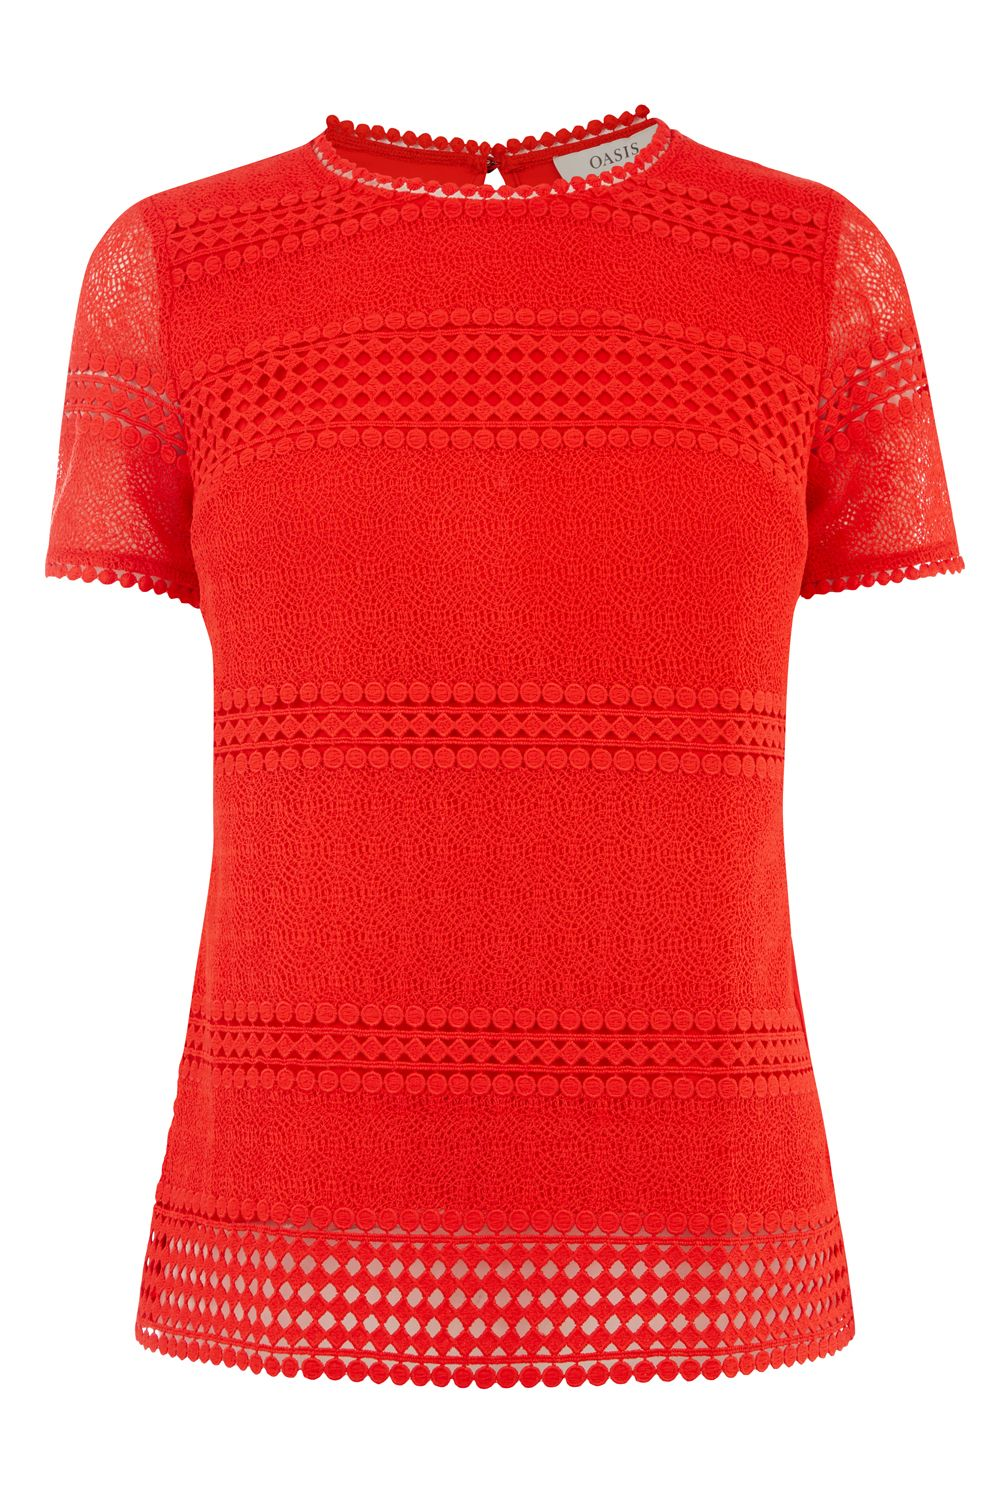 Oasis MARAIS LACE TEE, Red